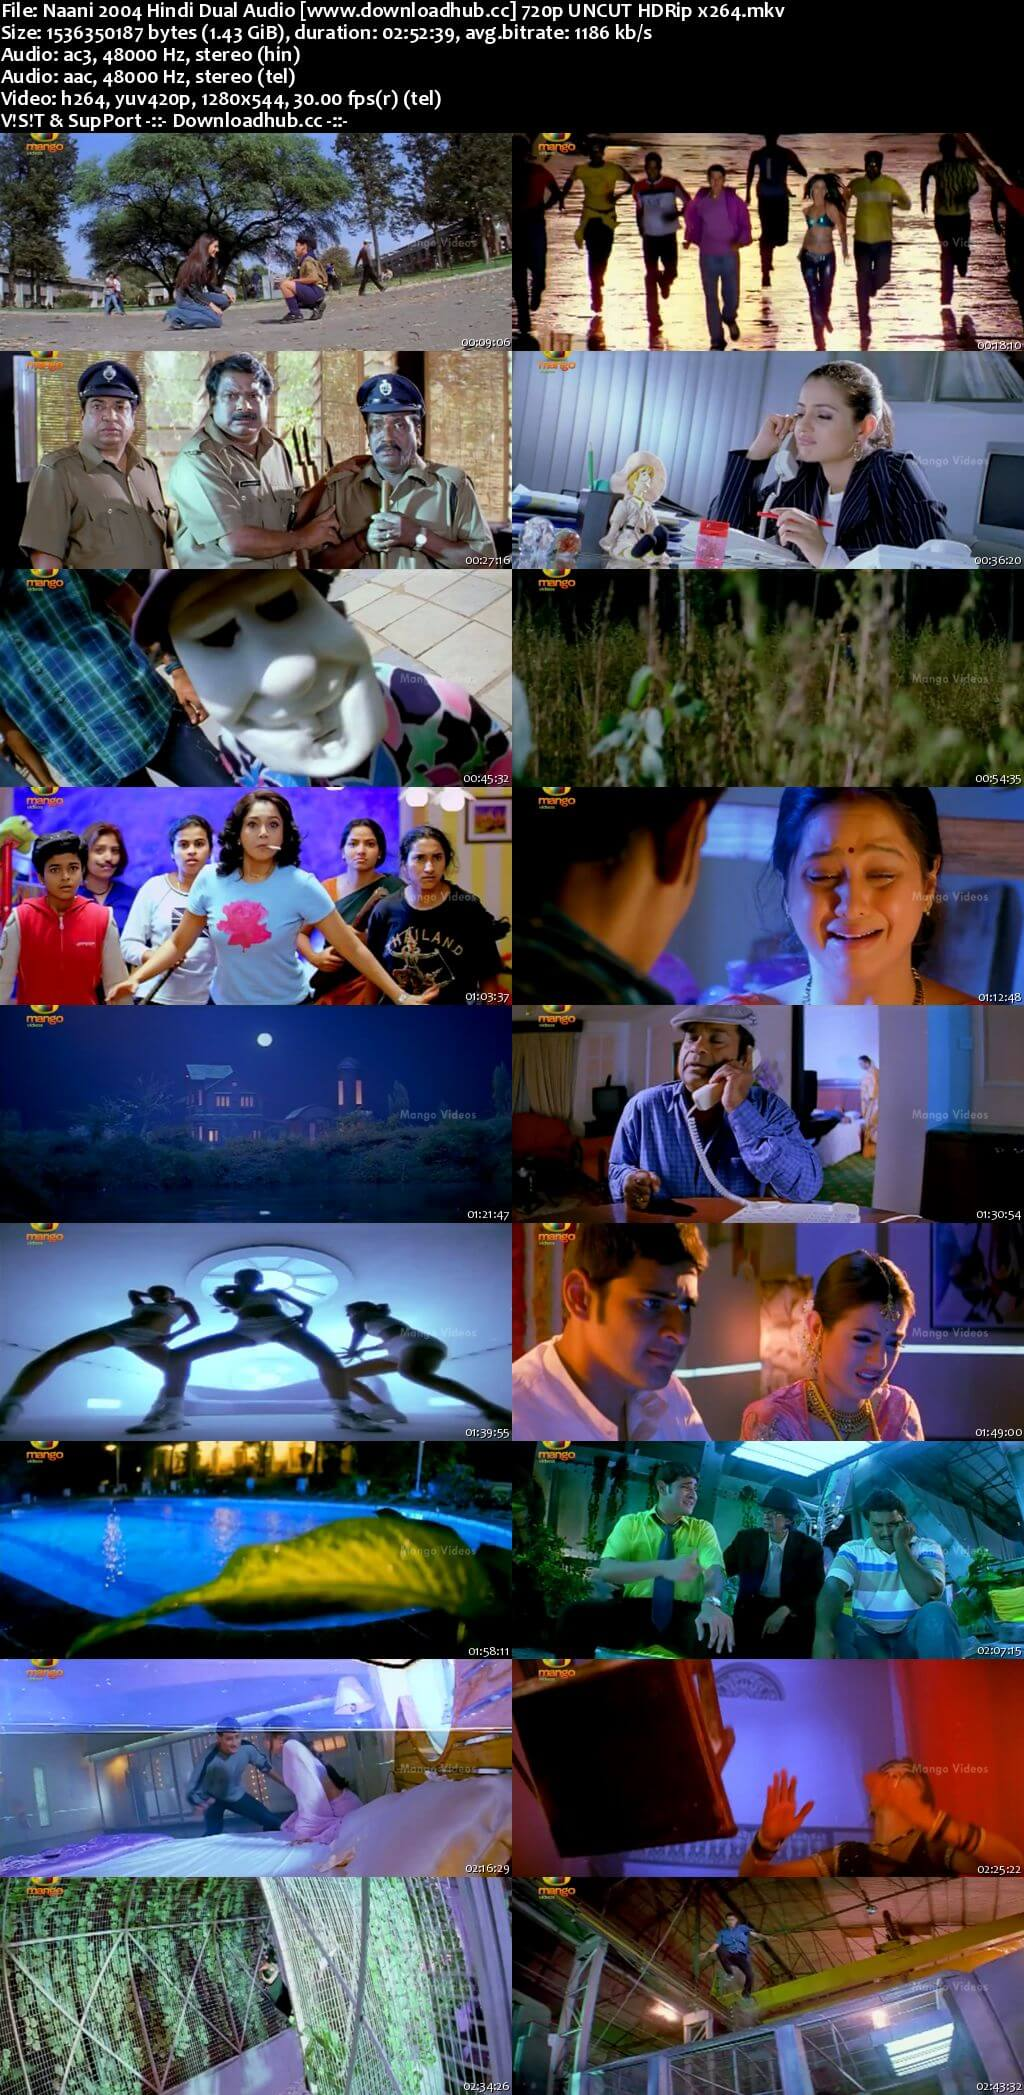 Naani 2004 Hindi Dual Audio 720p UNCUT HDRip